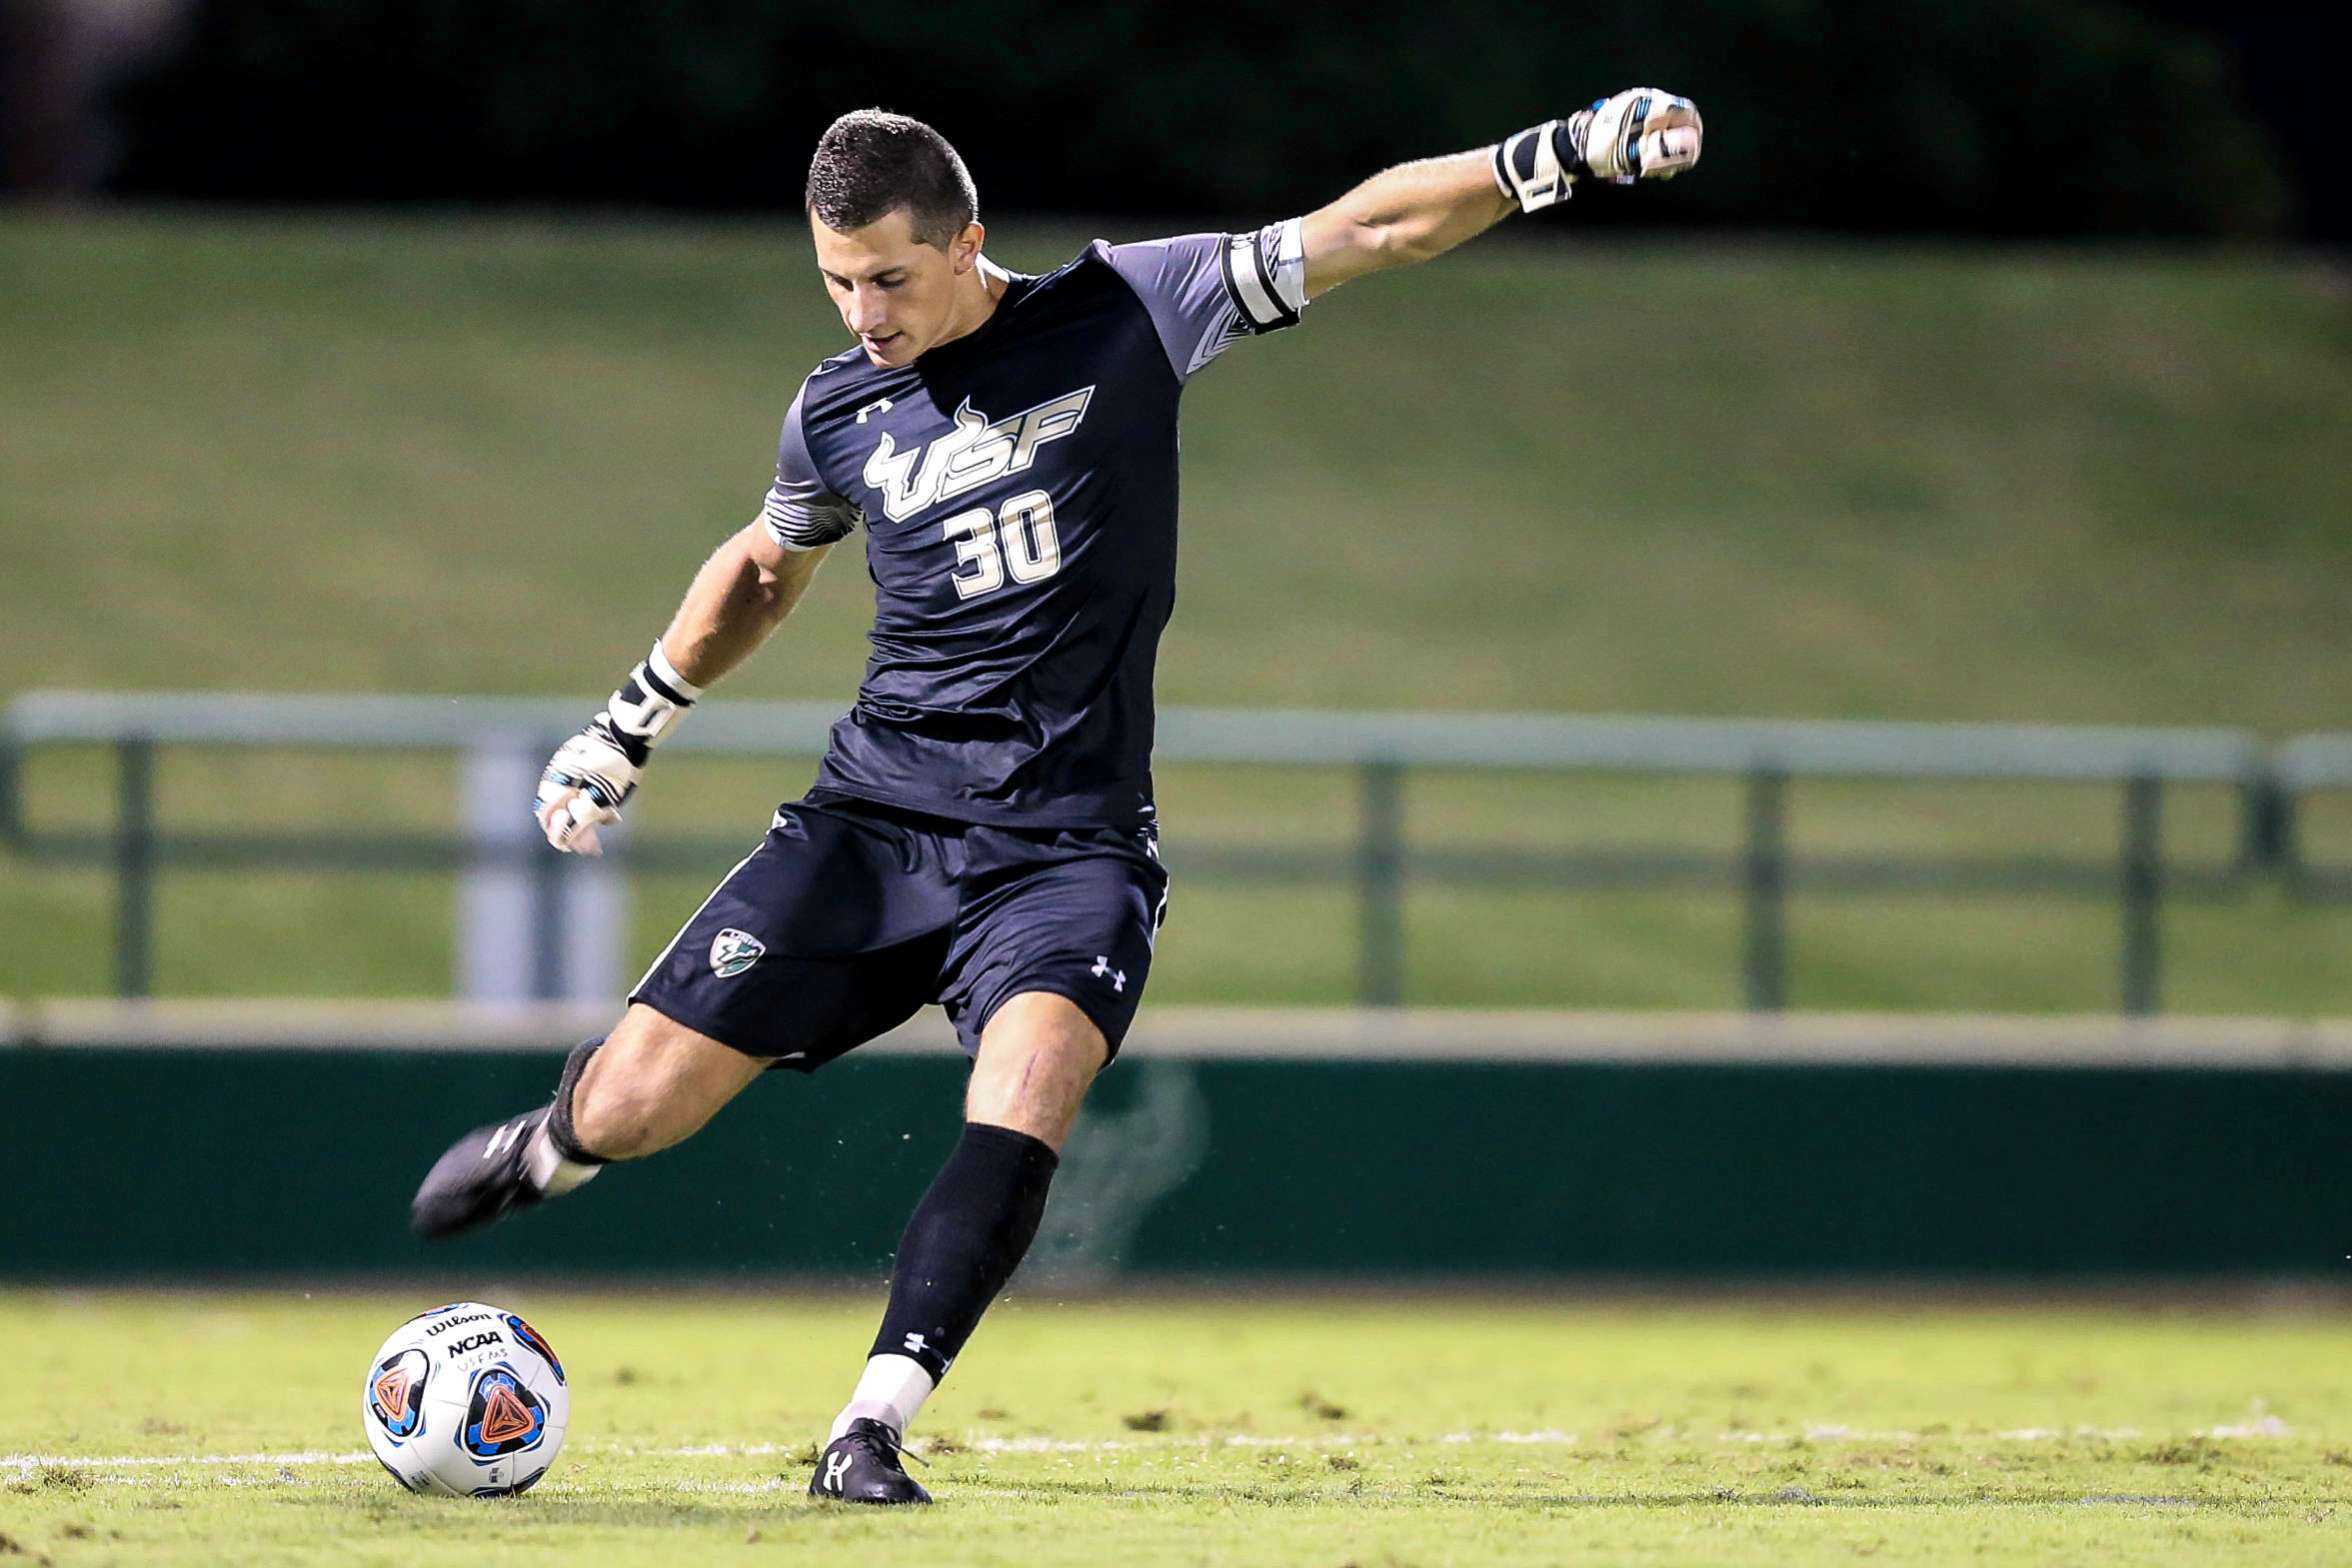 USF Men's Soccer No. 30 Spasoje Stefanovic HD (2353x1569)